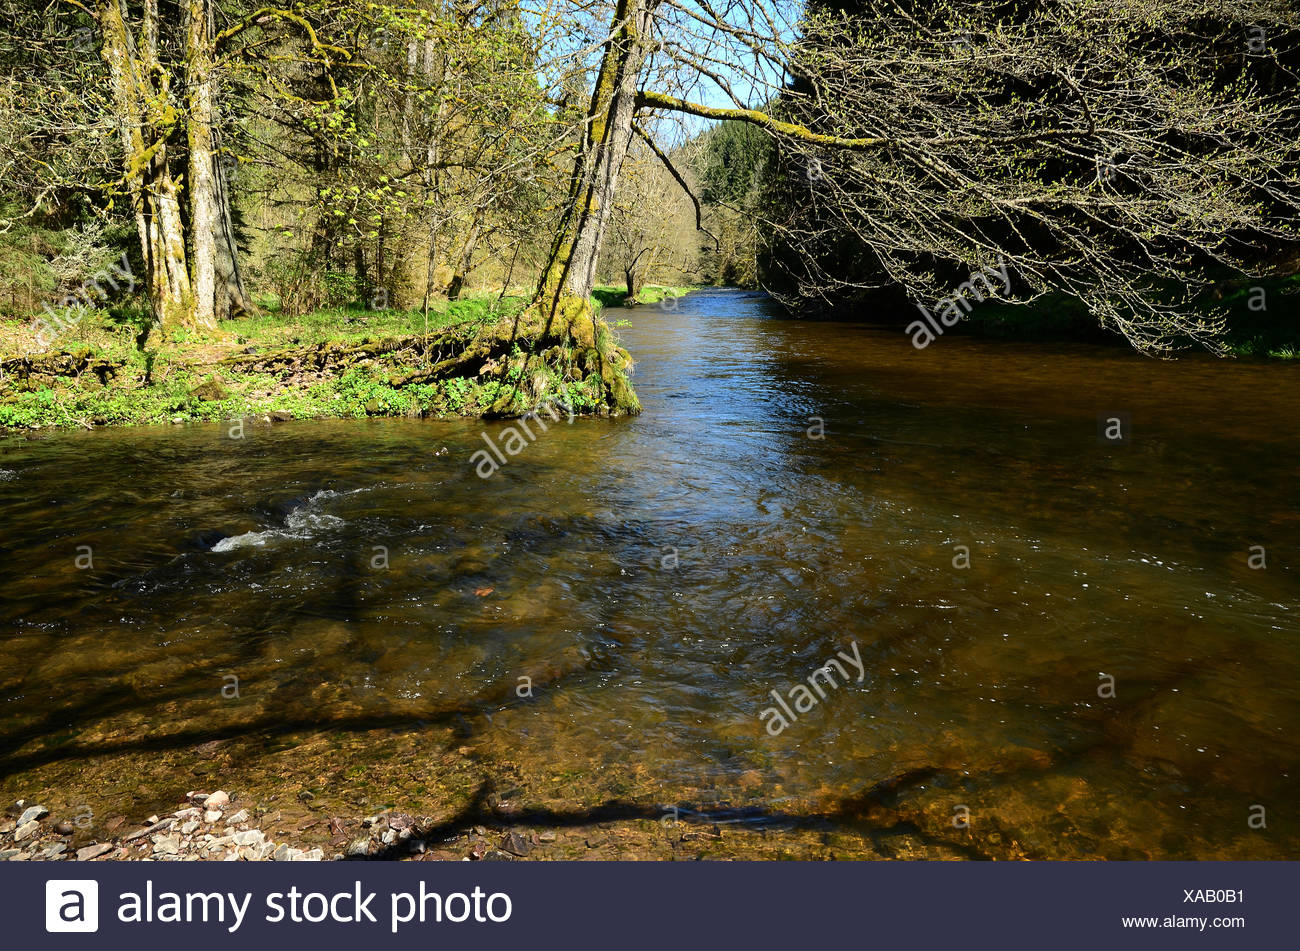 Wutach River, Black Forest, Germany - Stock Image